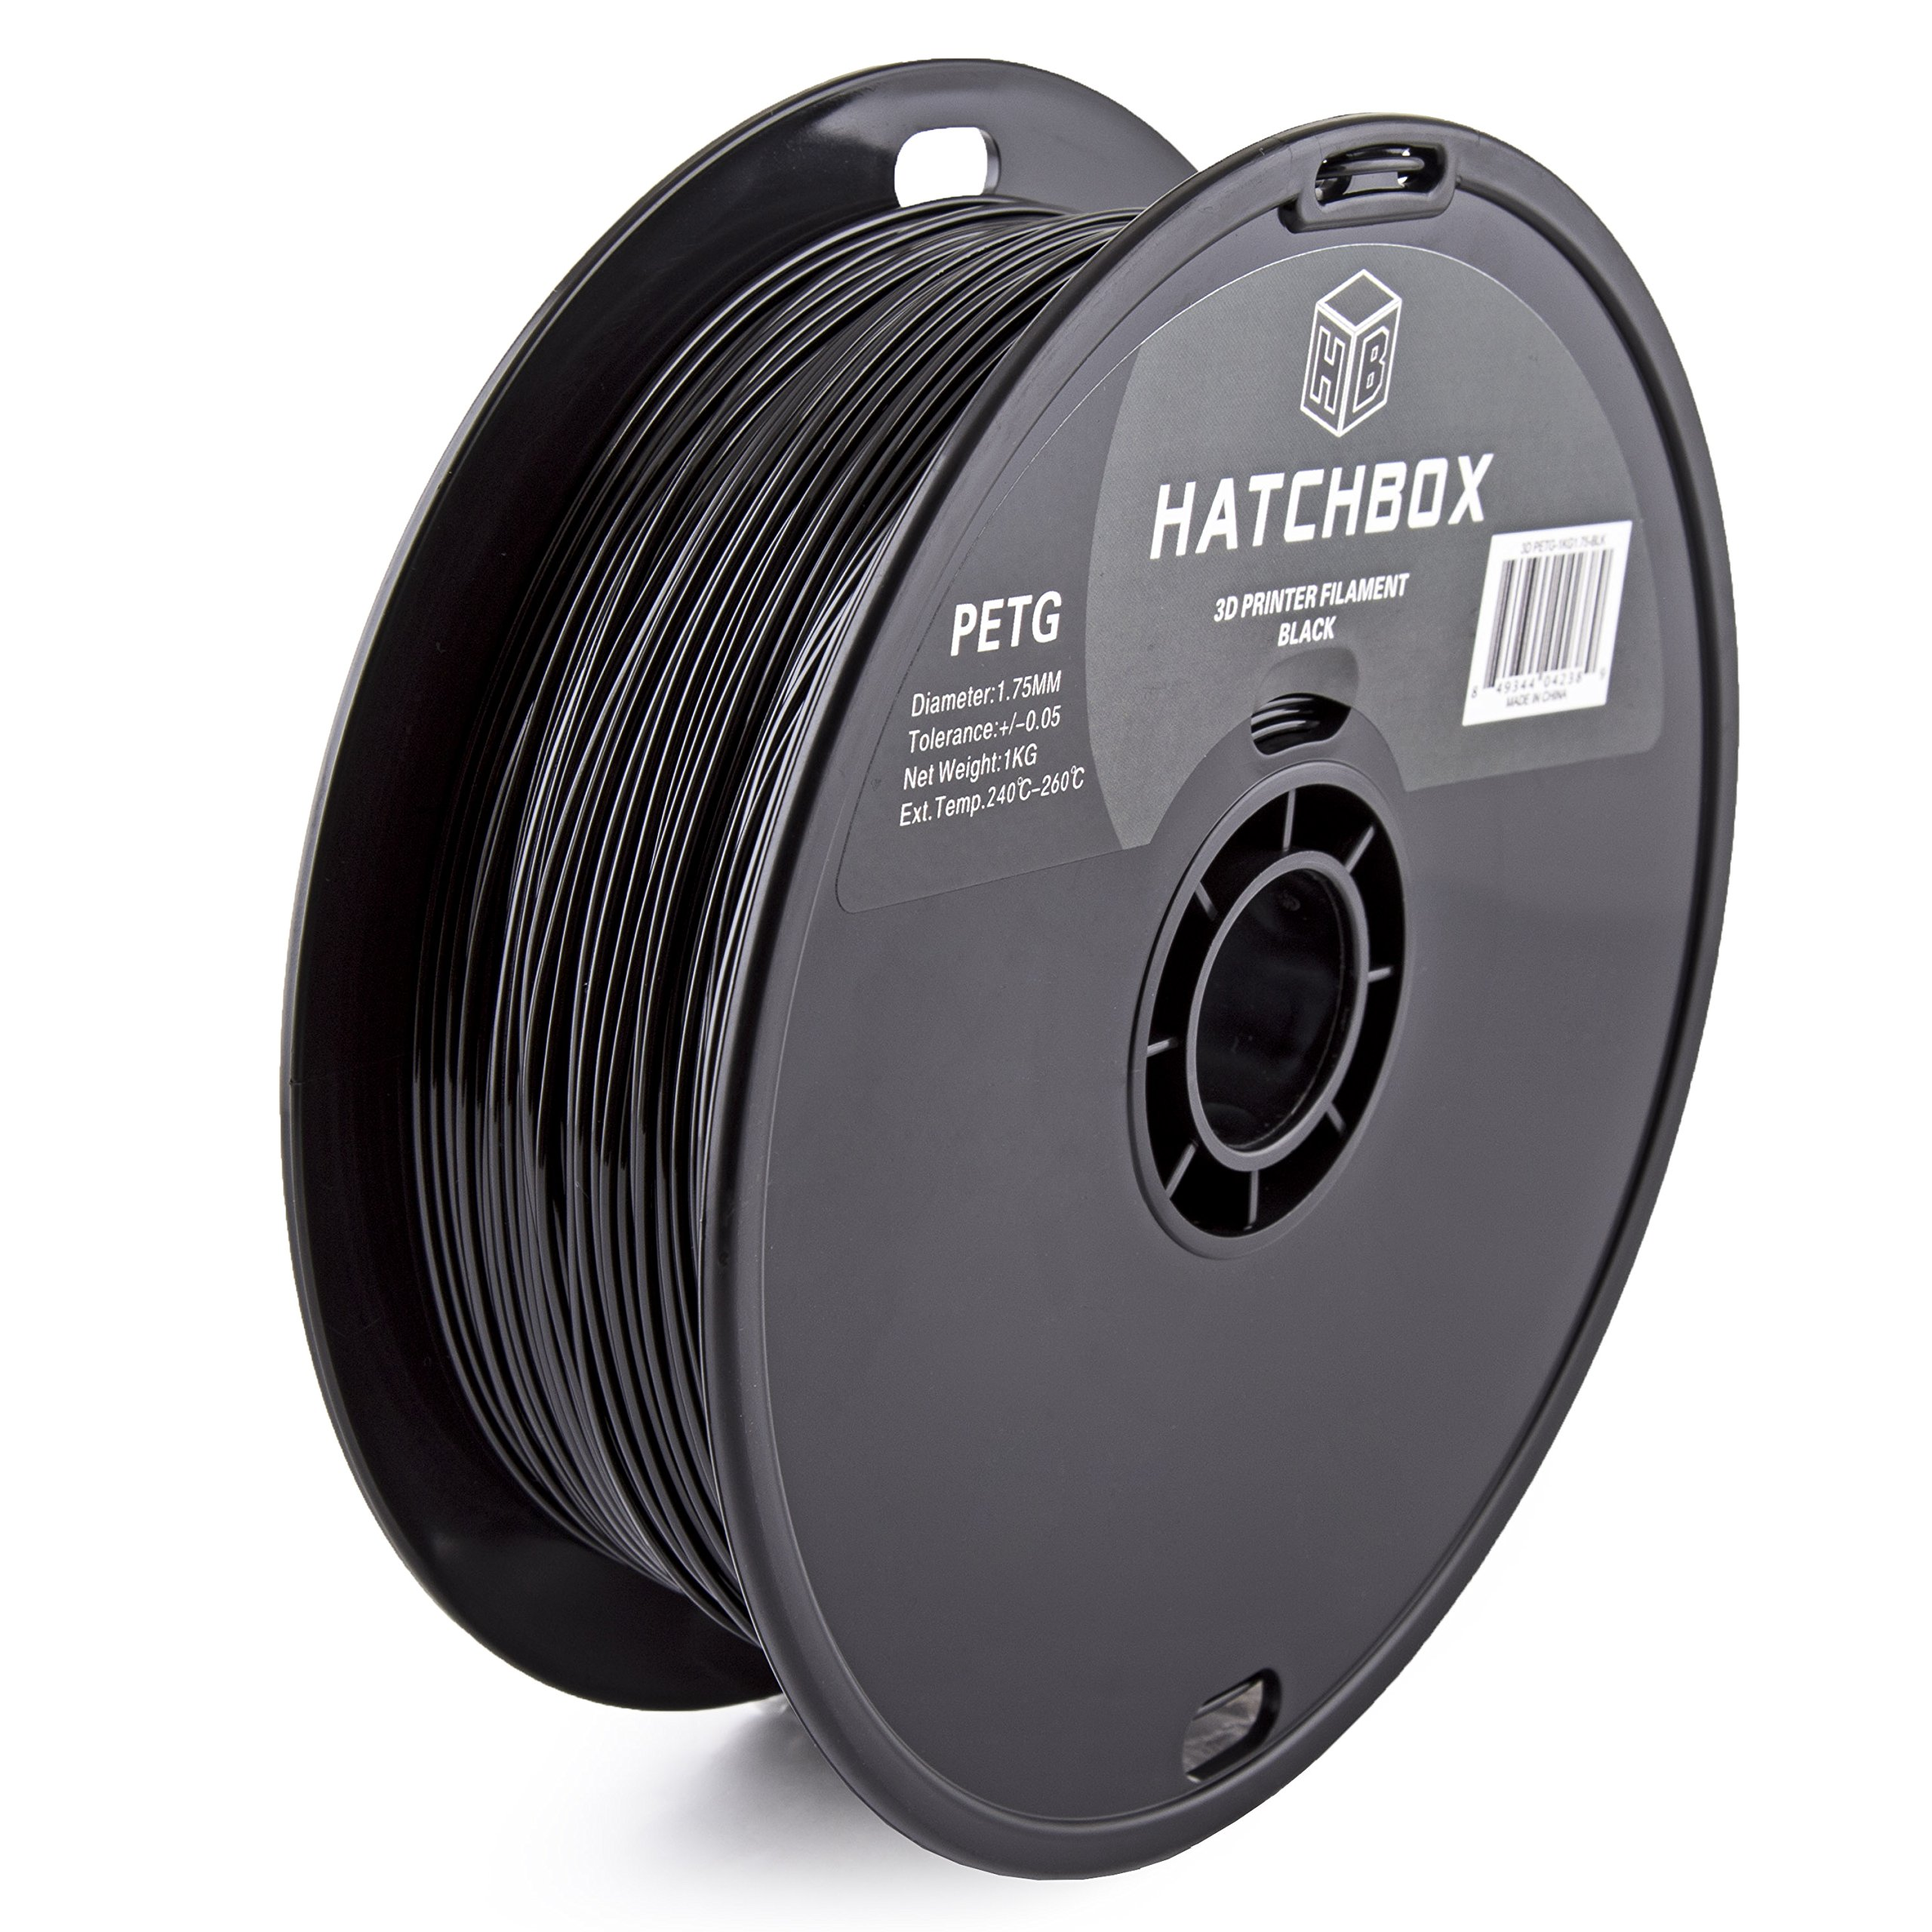 HATCHBOX PETG 3D Printer Filament, Dimensional Accuracy +/- 0.03 mm, 1 kg Spool, 1.75 mm, Black